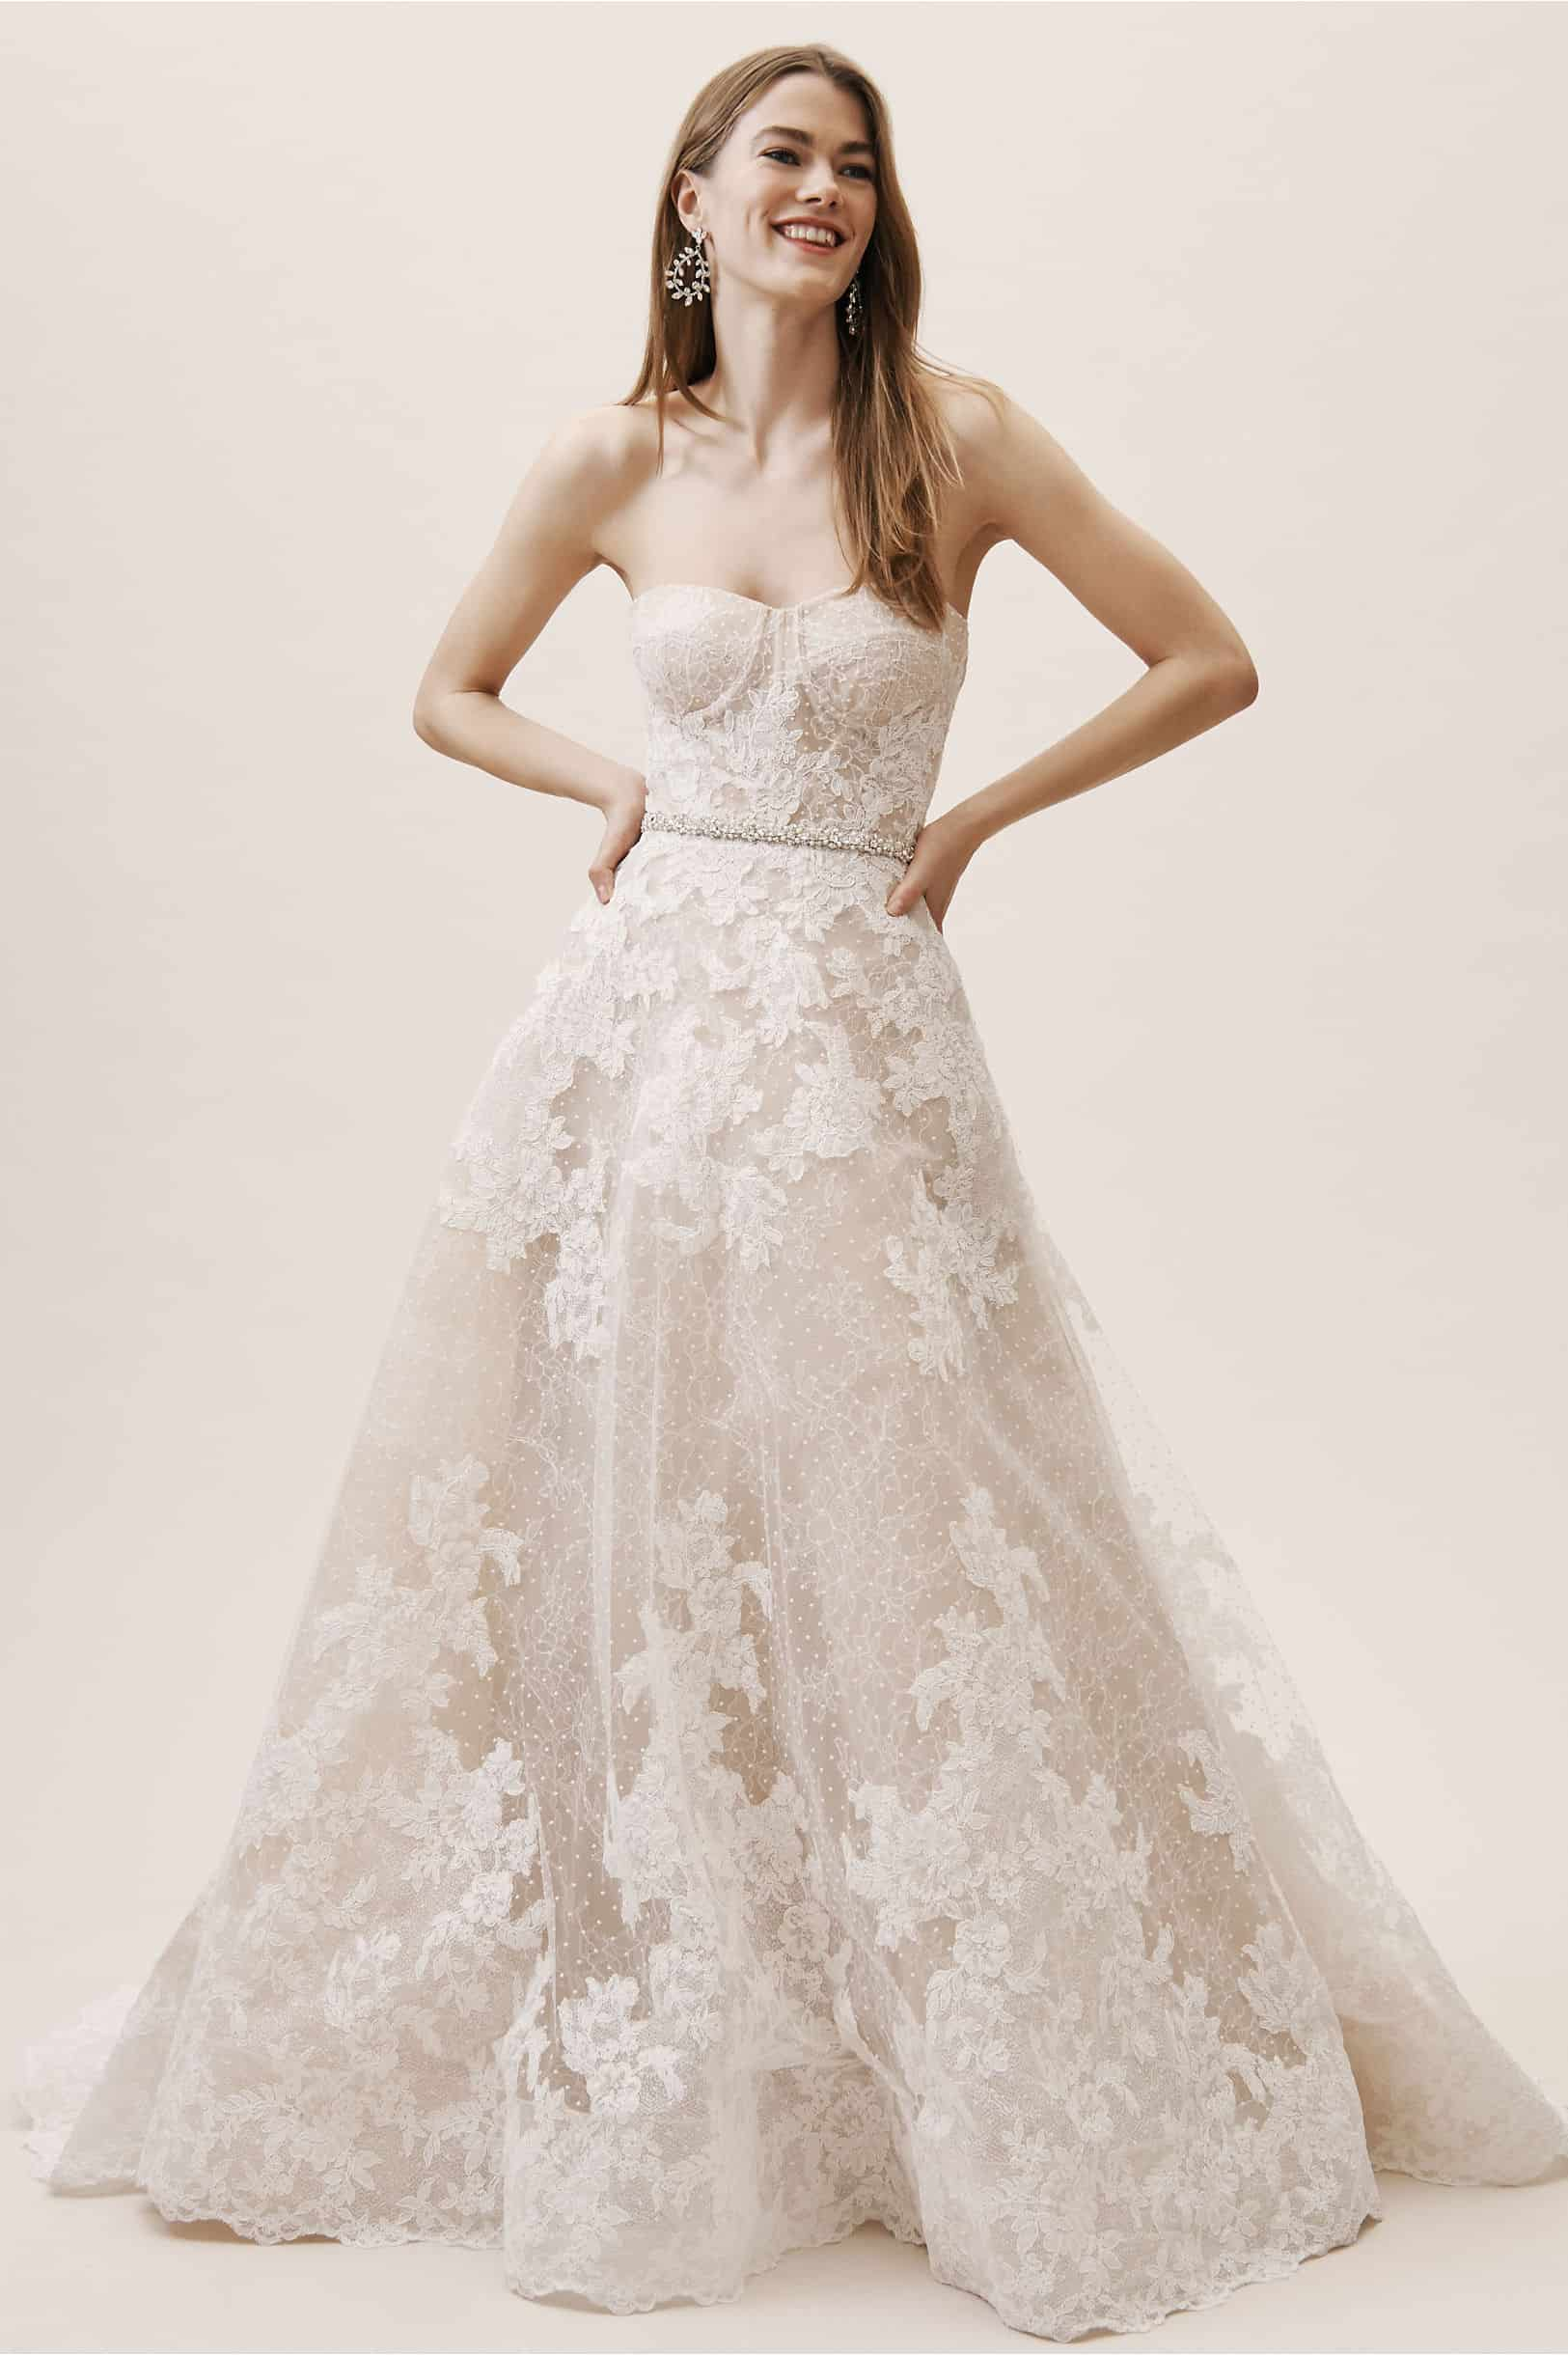 Strapless Wedding Dresses Nude Bridal Gown Chantilly Lace Swiss Dot Tulle Geneva Gown BHLDN Watters